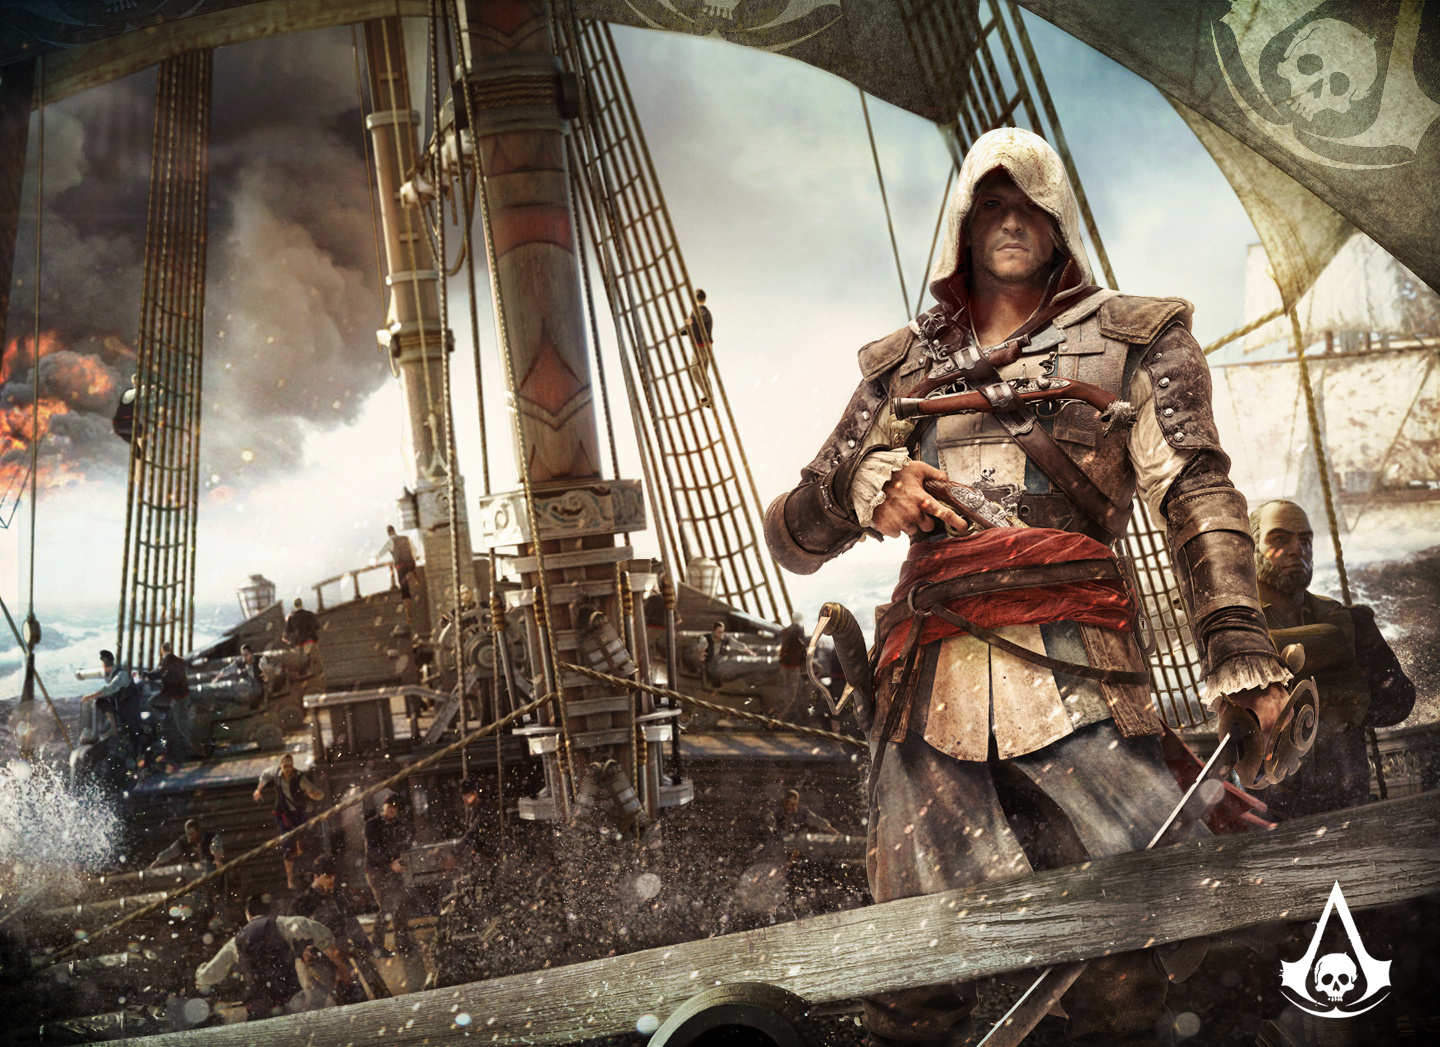 download Assassins Creed 4 Black Flag pirate gameplay trailer 1440x1047